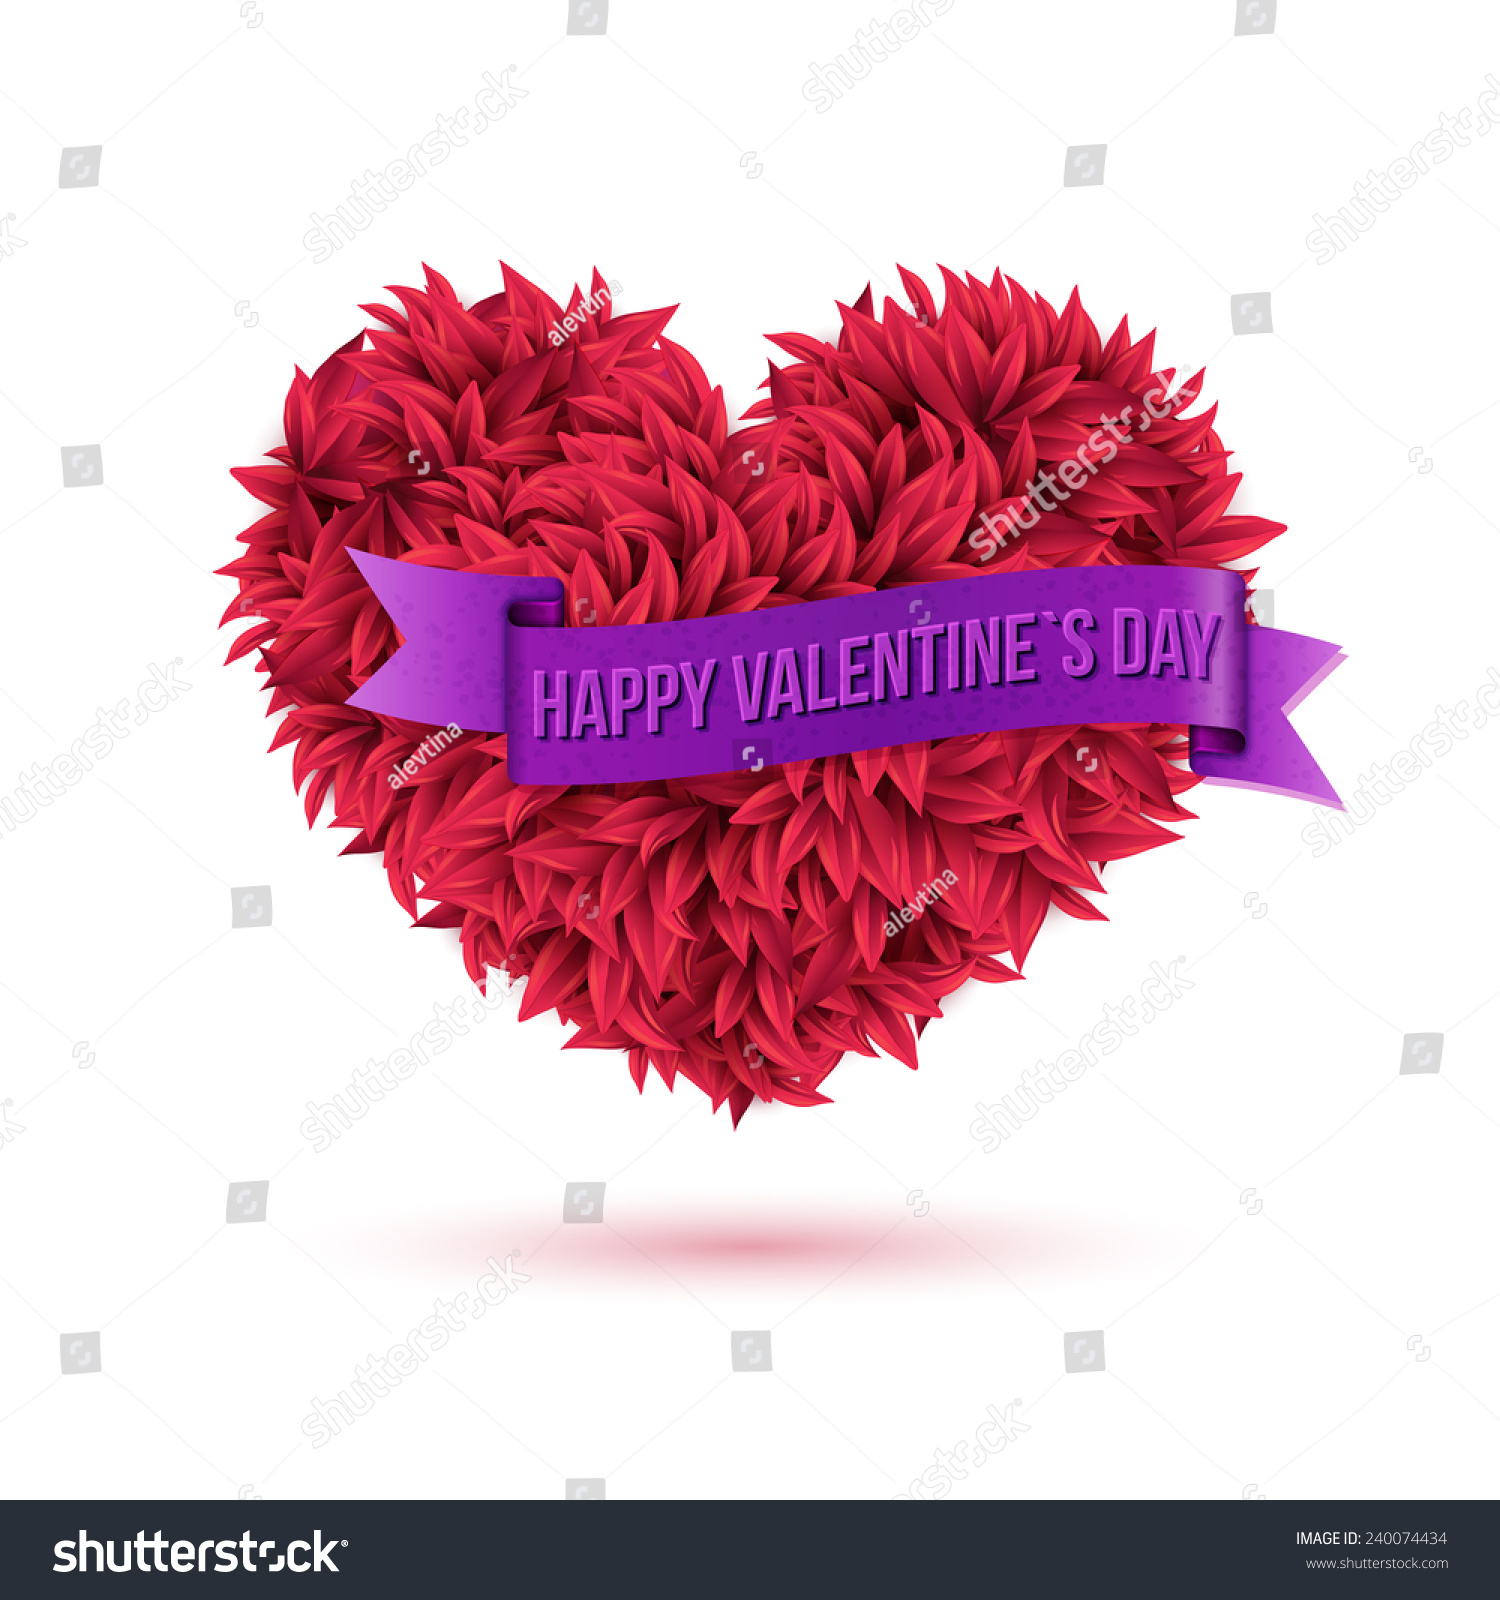 simple valentines concept happy valentines day texts on violet ribbon attached on red leafy heart - Valentines Day Texts